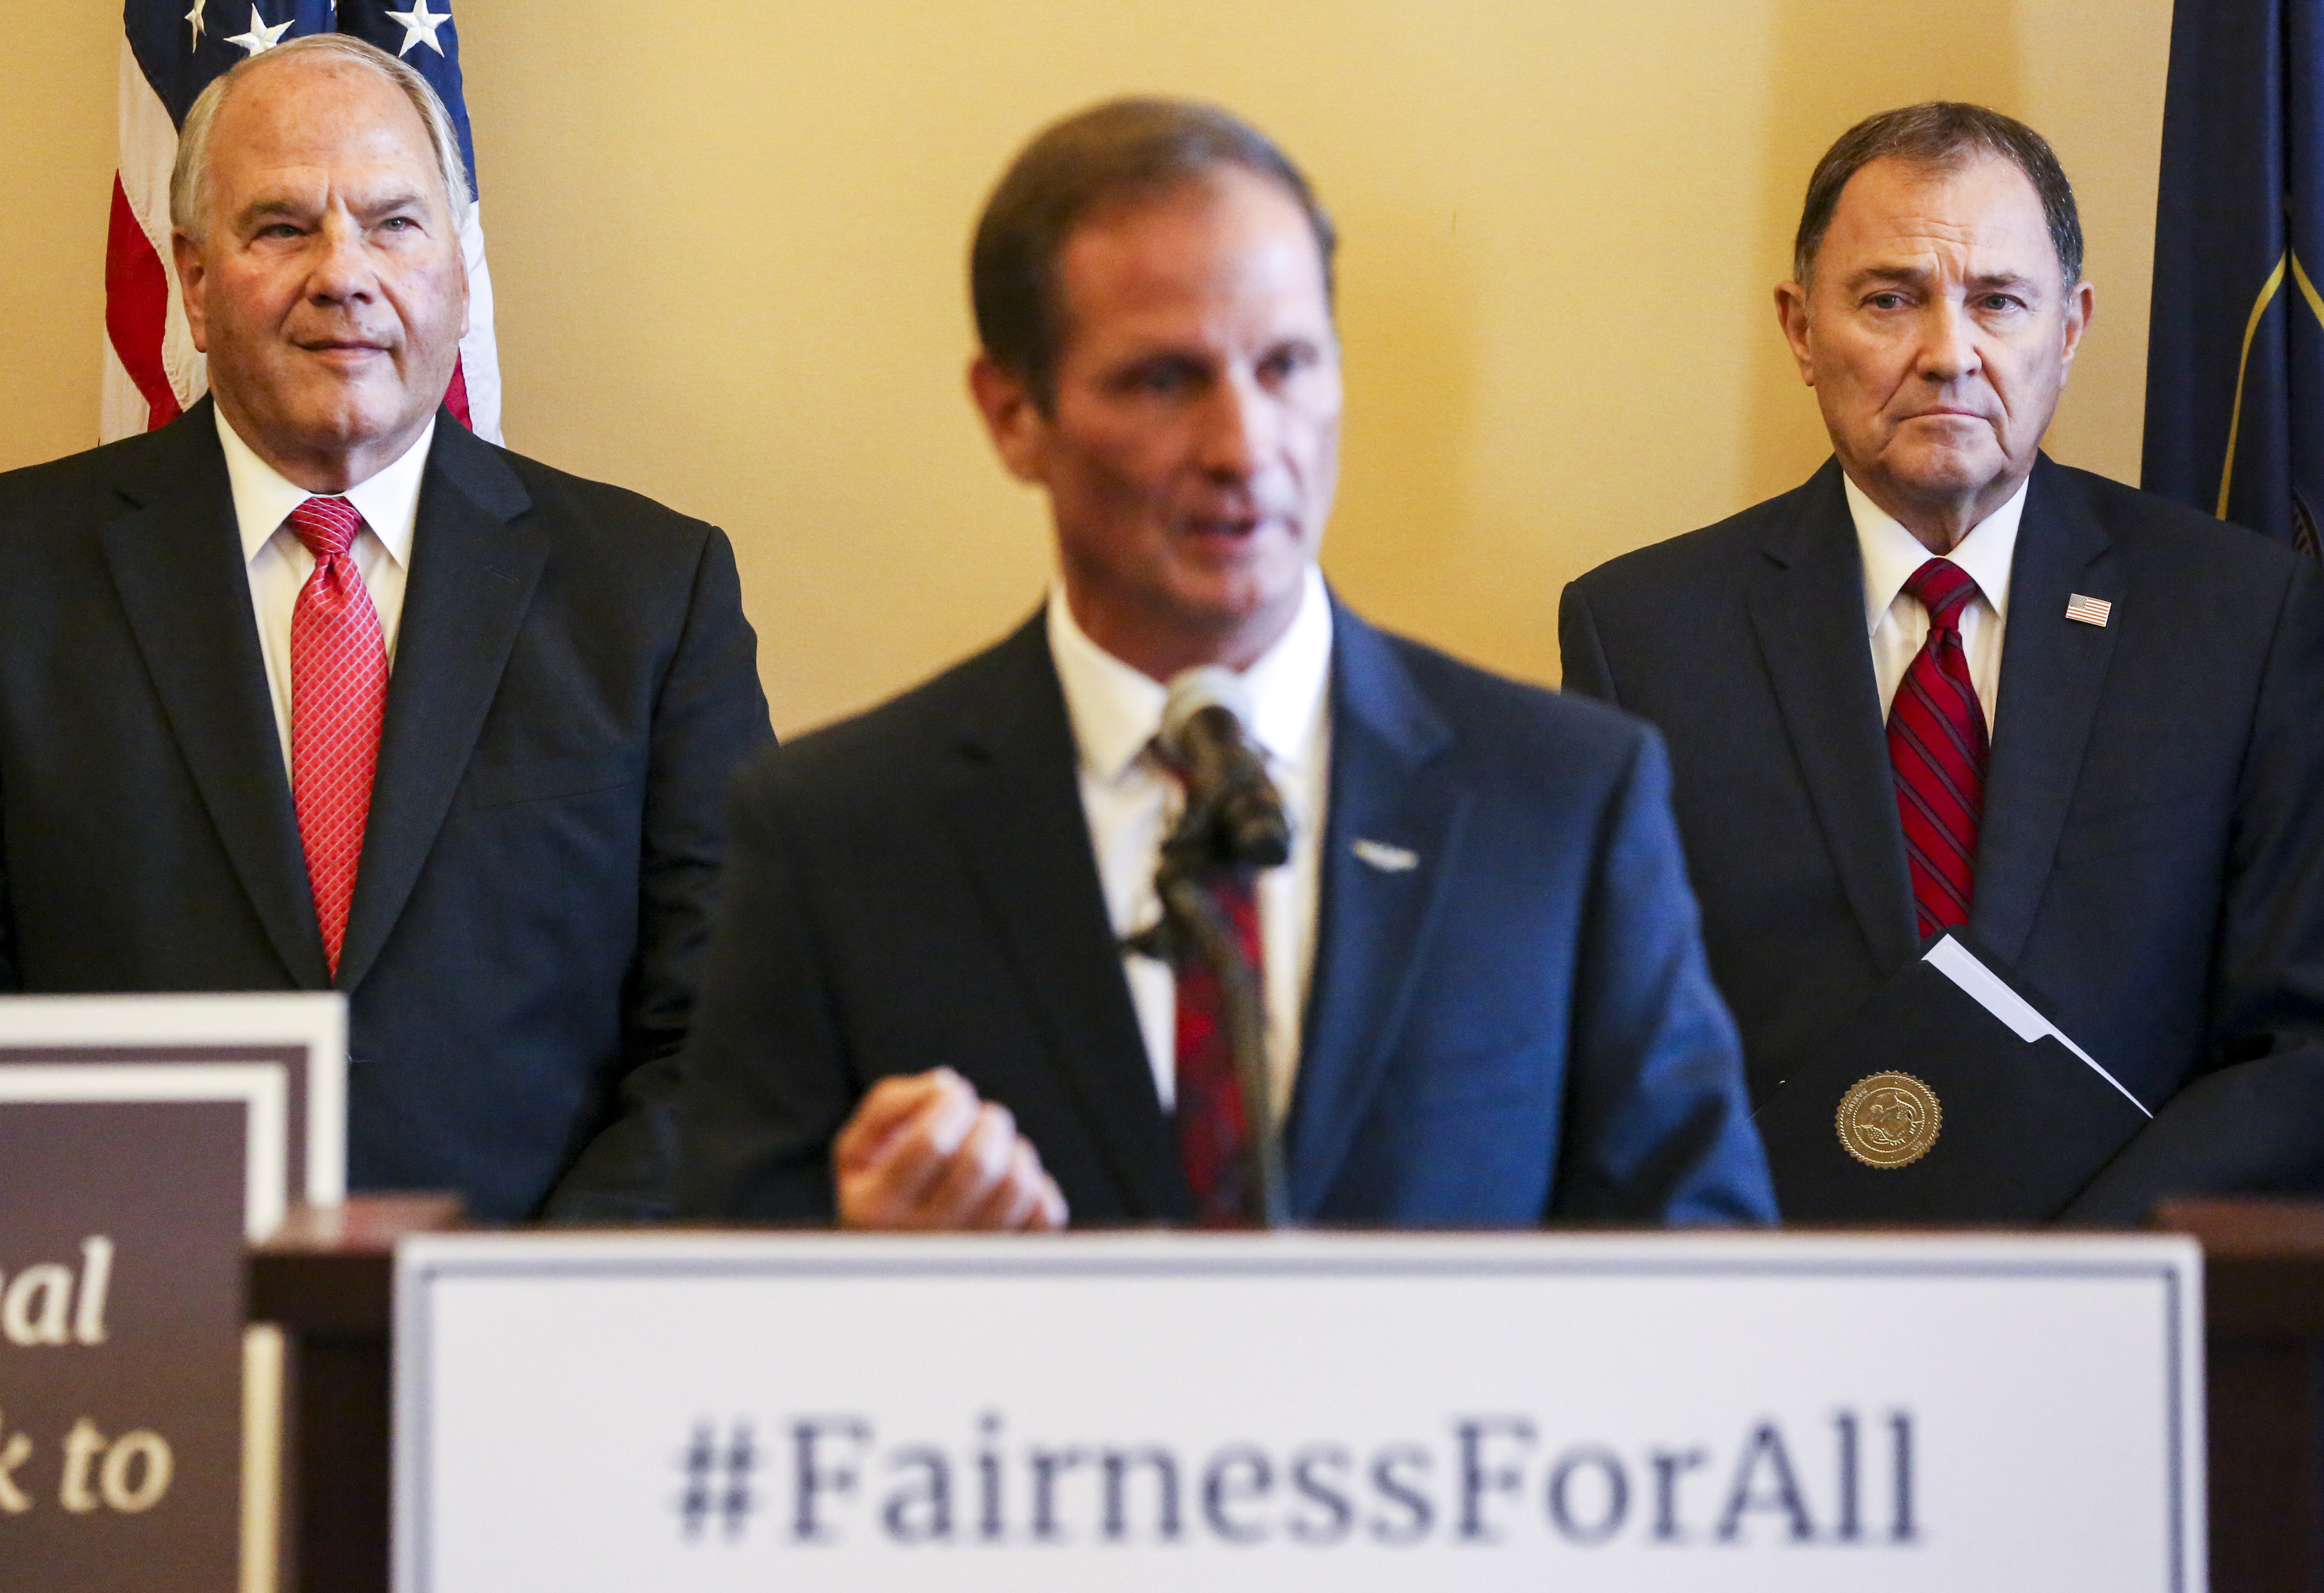 Elder Ronald A. Rasband of the Quorum of the Twelve Apostles of The Church of Jesus Christ of Latter-day Saints, left, and Utah Gov. Gary Herbert, right, listen to Utah Rep. Chris Stewart speak during a press conference to introduce the Fairness for All Act at the Utah State Capitol in Salt Lake City on Monday, Dec. 9, 2019.